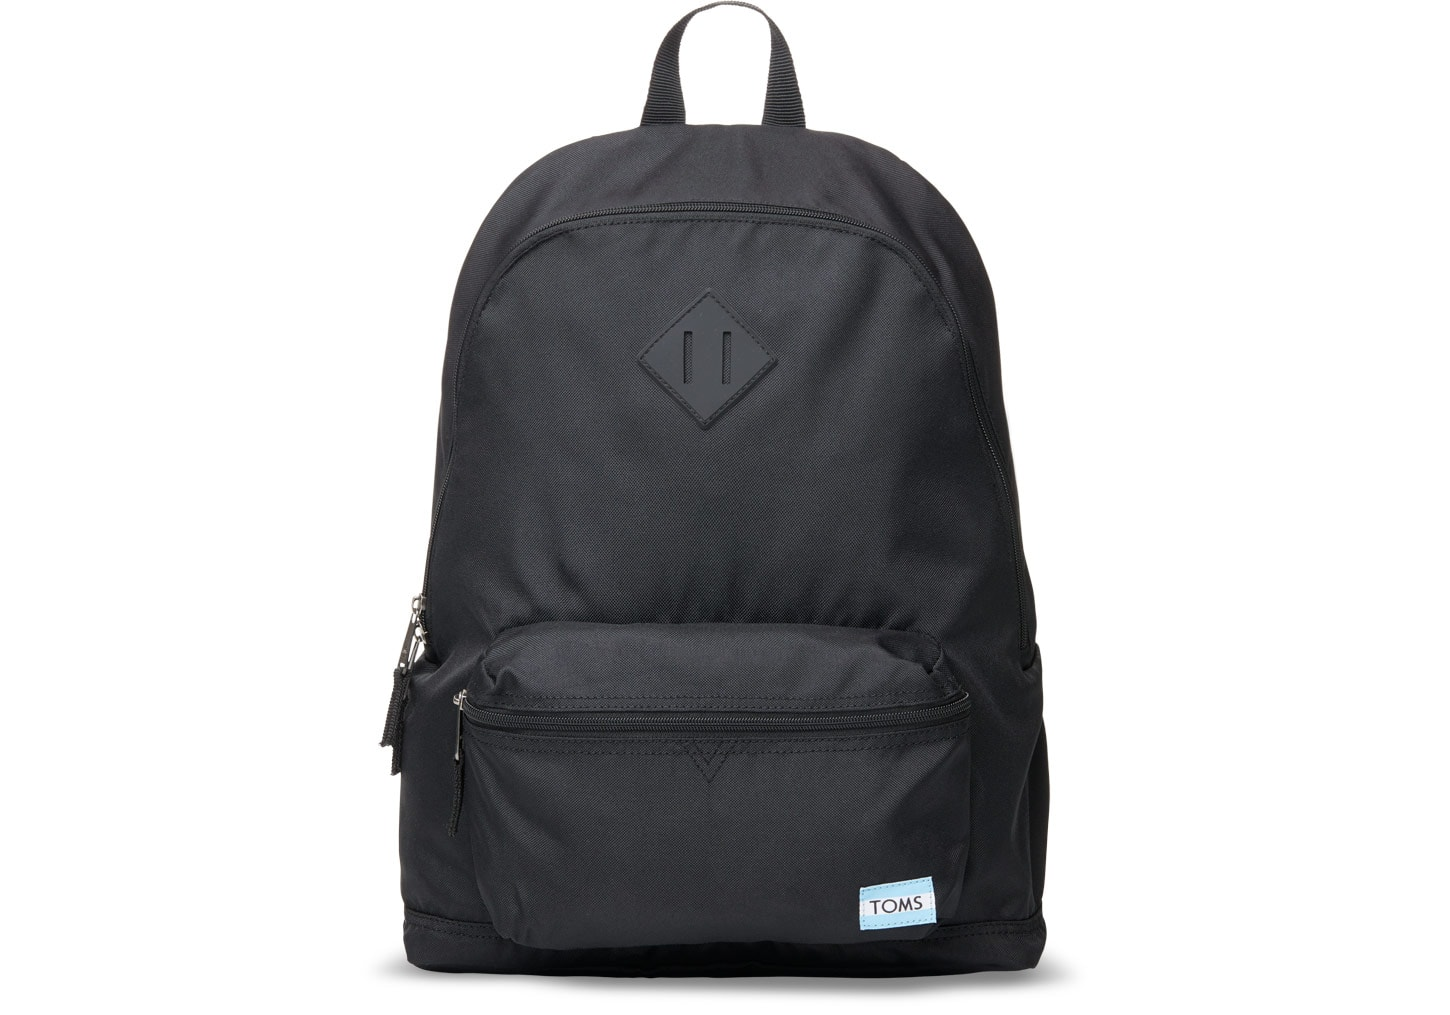 Toms Local Backpack 73% off @ $14.99